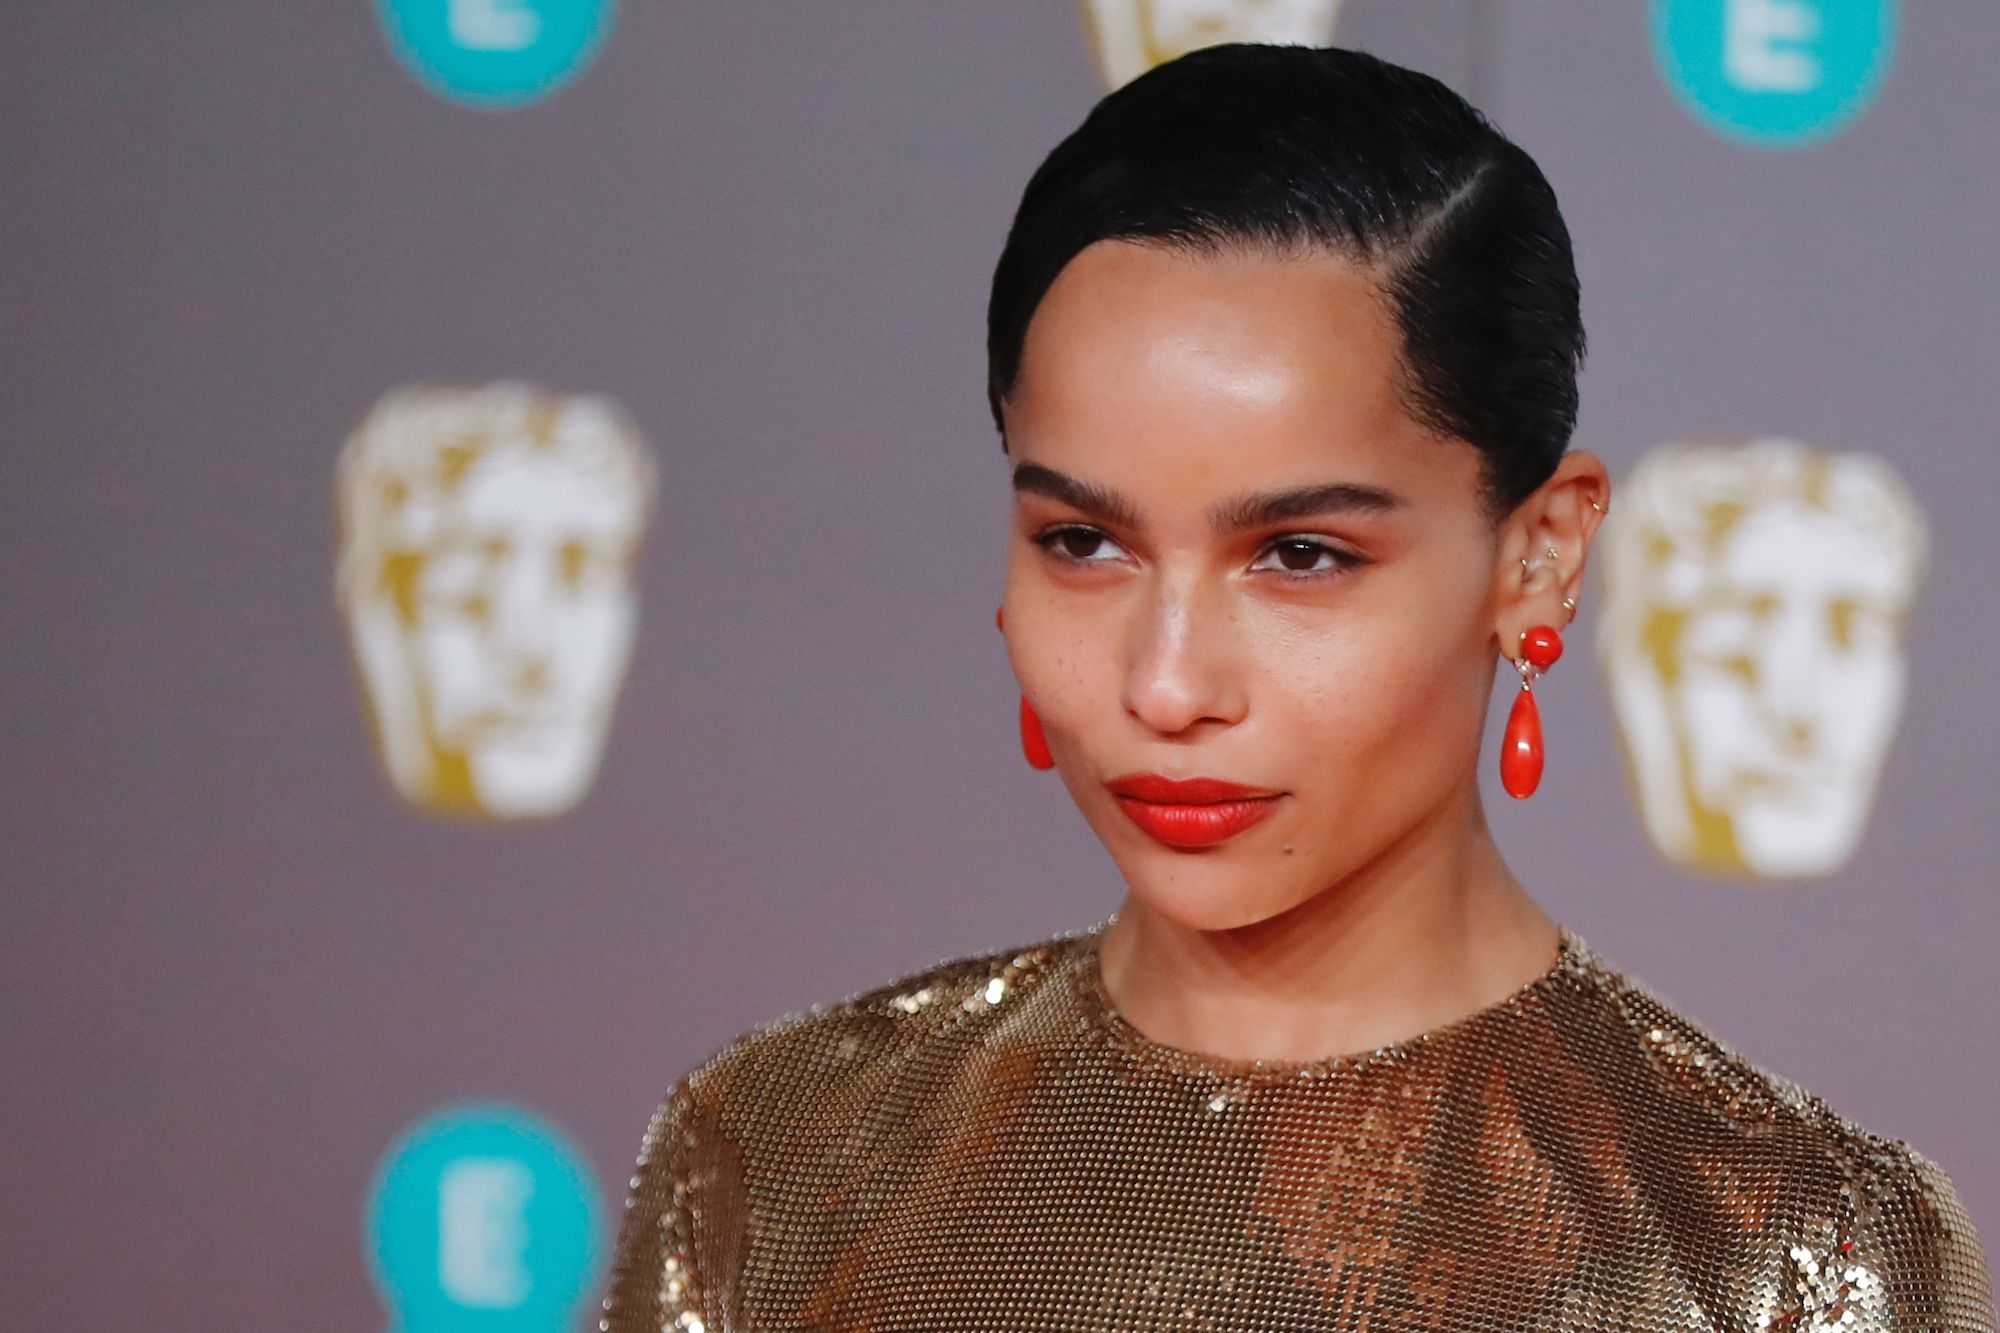 Zoë Kravitz on the red carpet for the BAFTA British Academy Film Awards on Feb. 2, 2020.